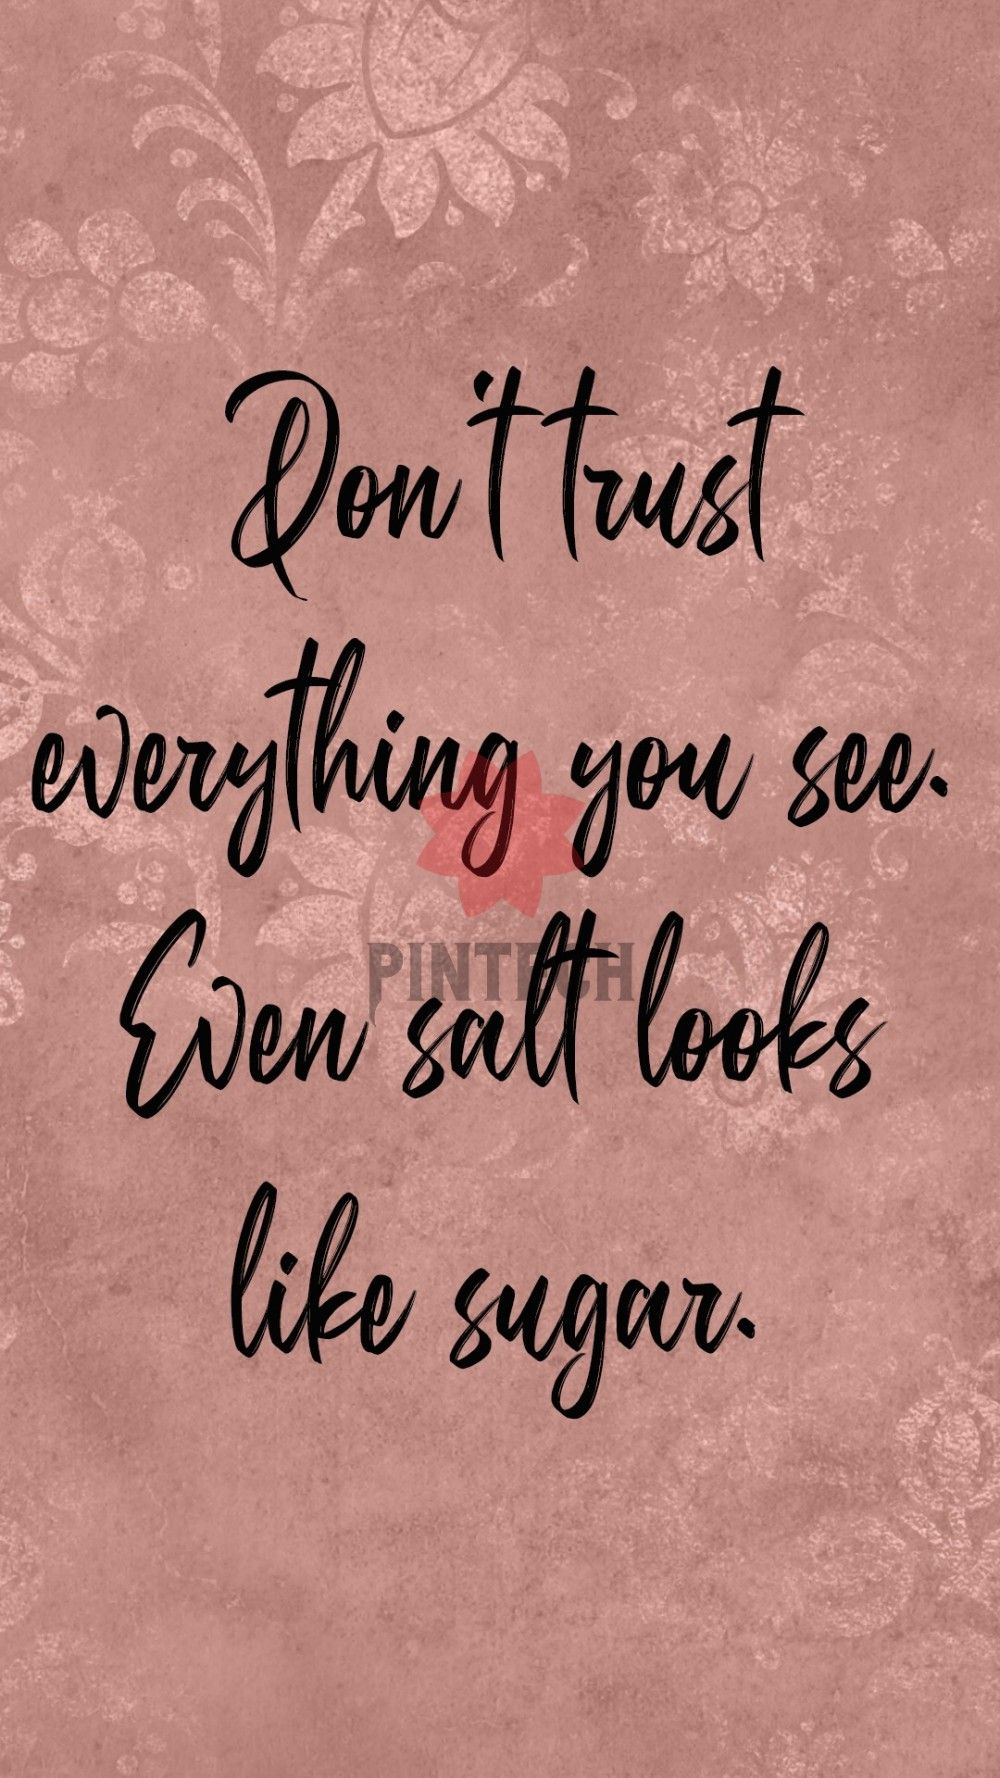 The Best Inspirational and Motivational Quotes Beauty and Lifestyle Honest Reviews DailyInput your search keywords and press EnterThe Best Inspirational and Motivational...